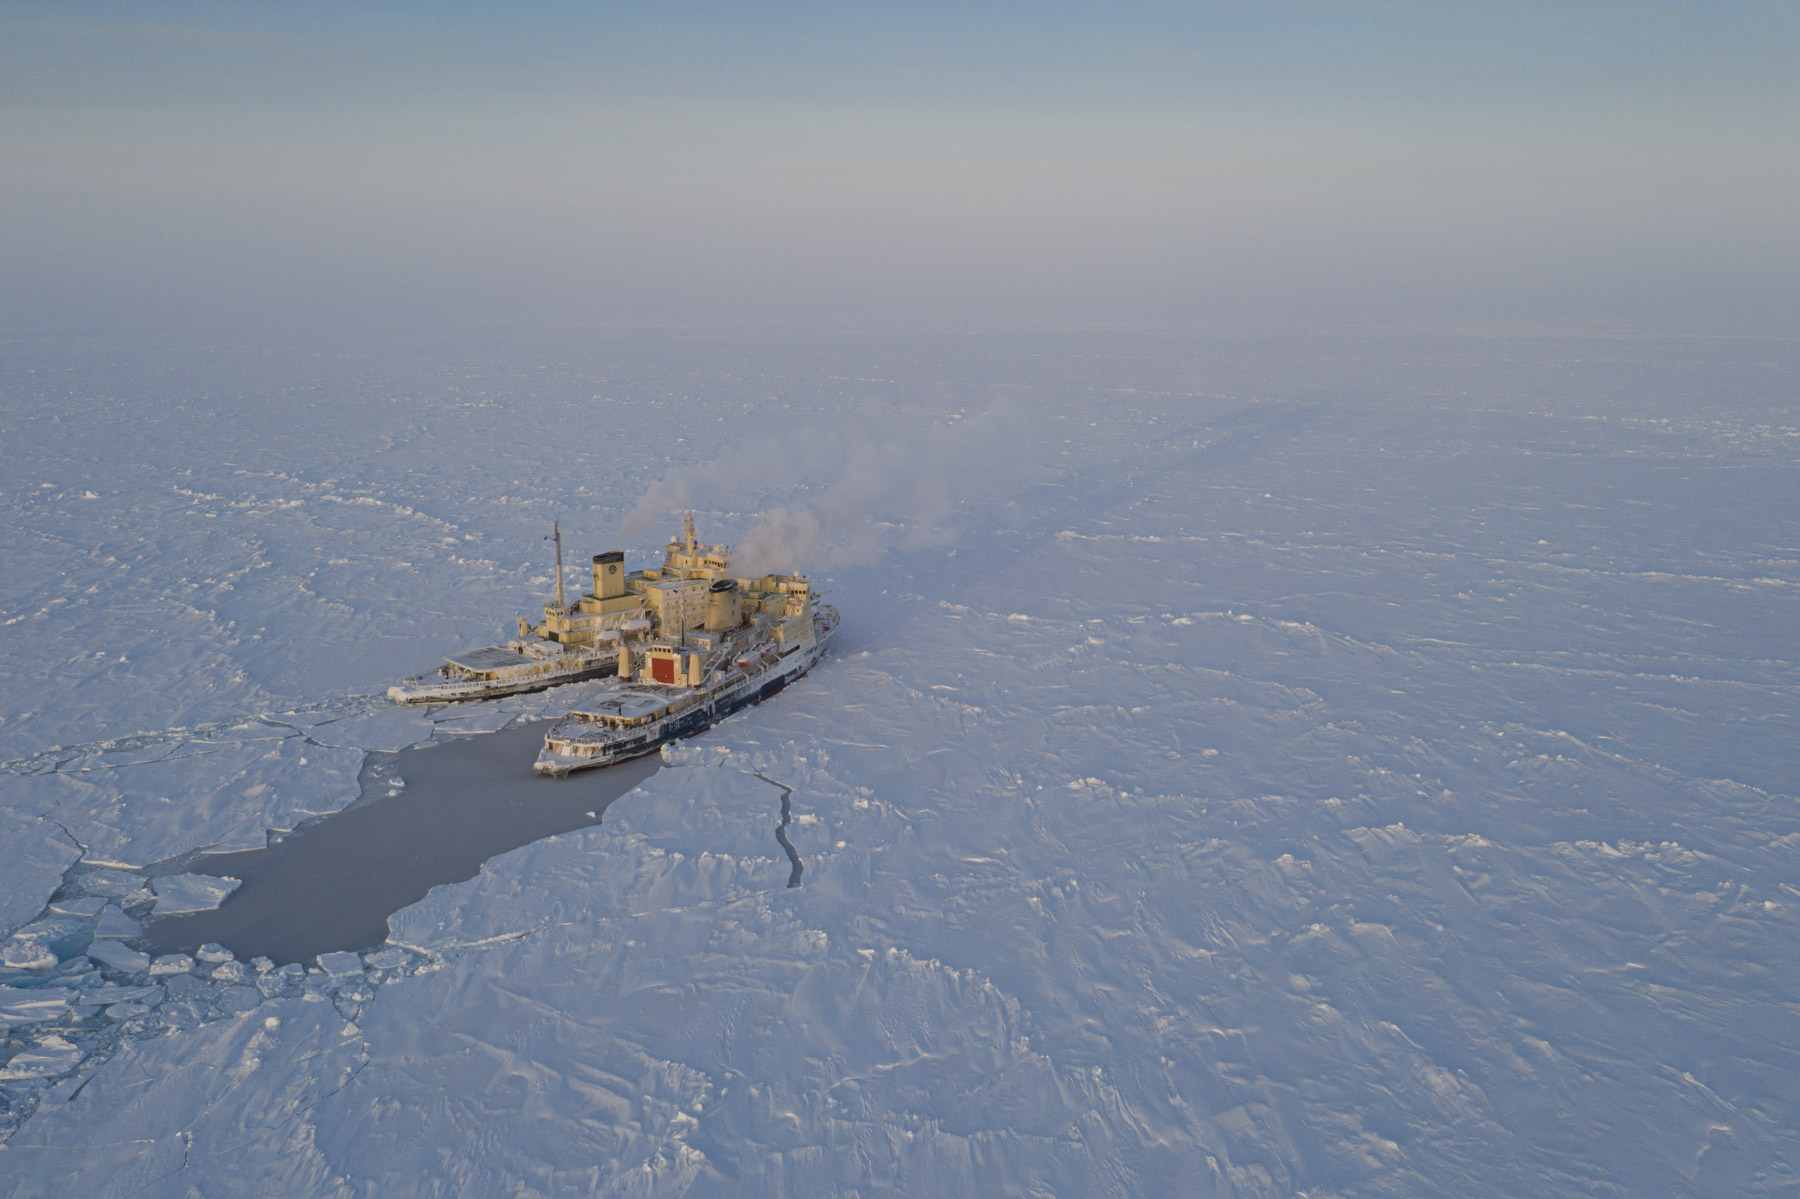 Russian icebreakers during MOSAiC expedition